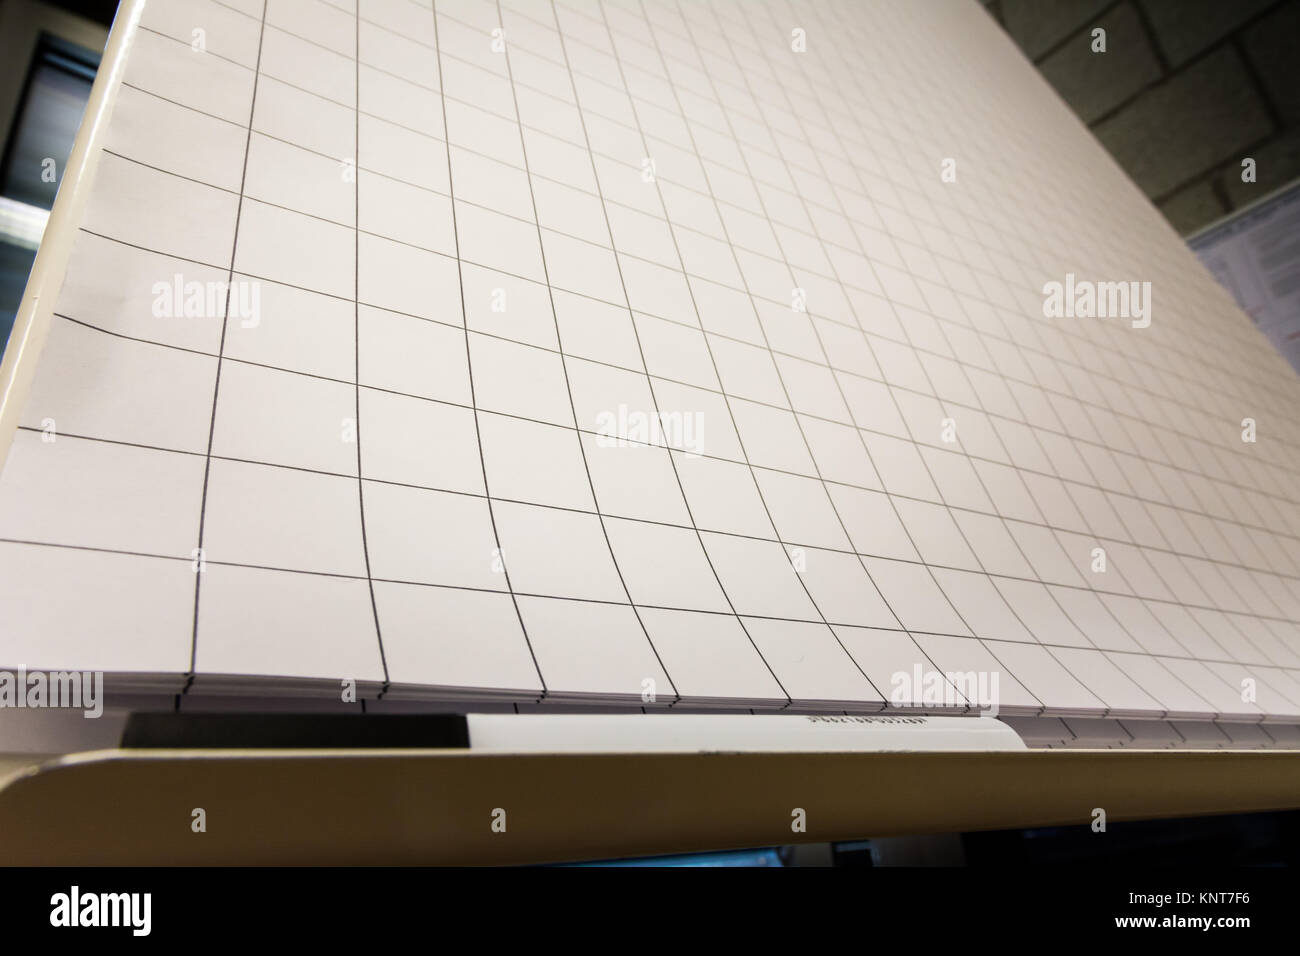 grid paper flipchart large sheets brainstorming empty blank black